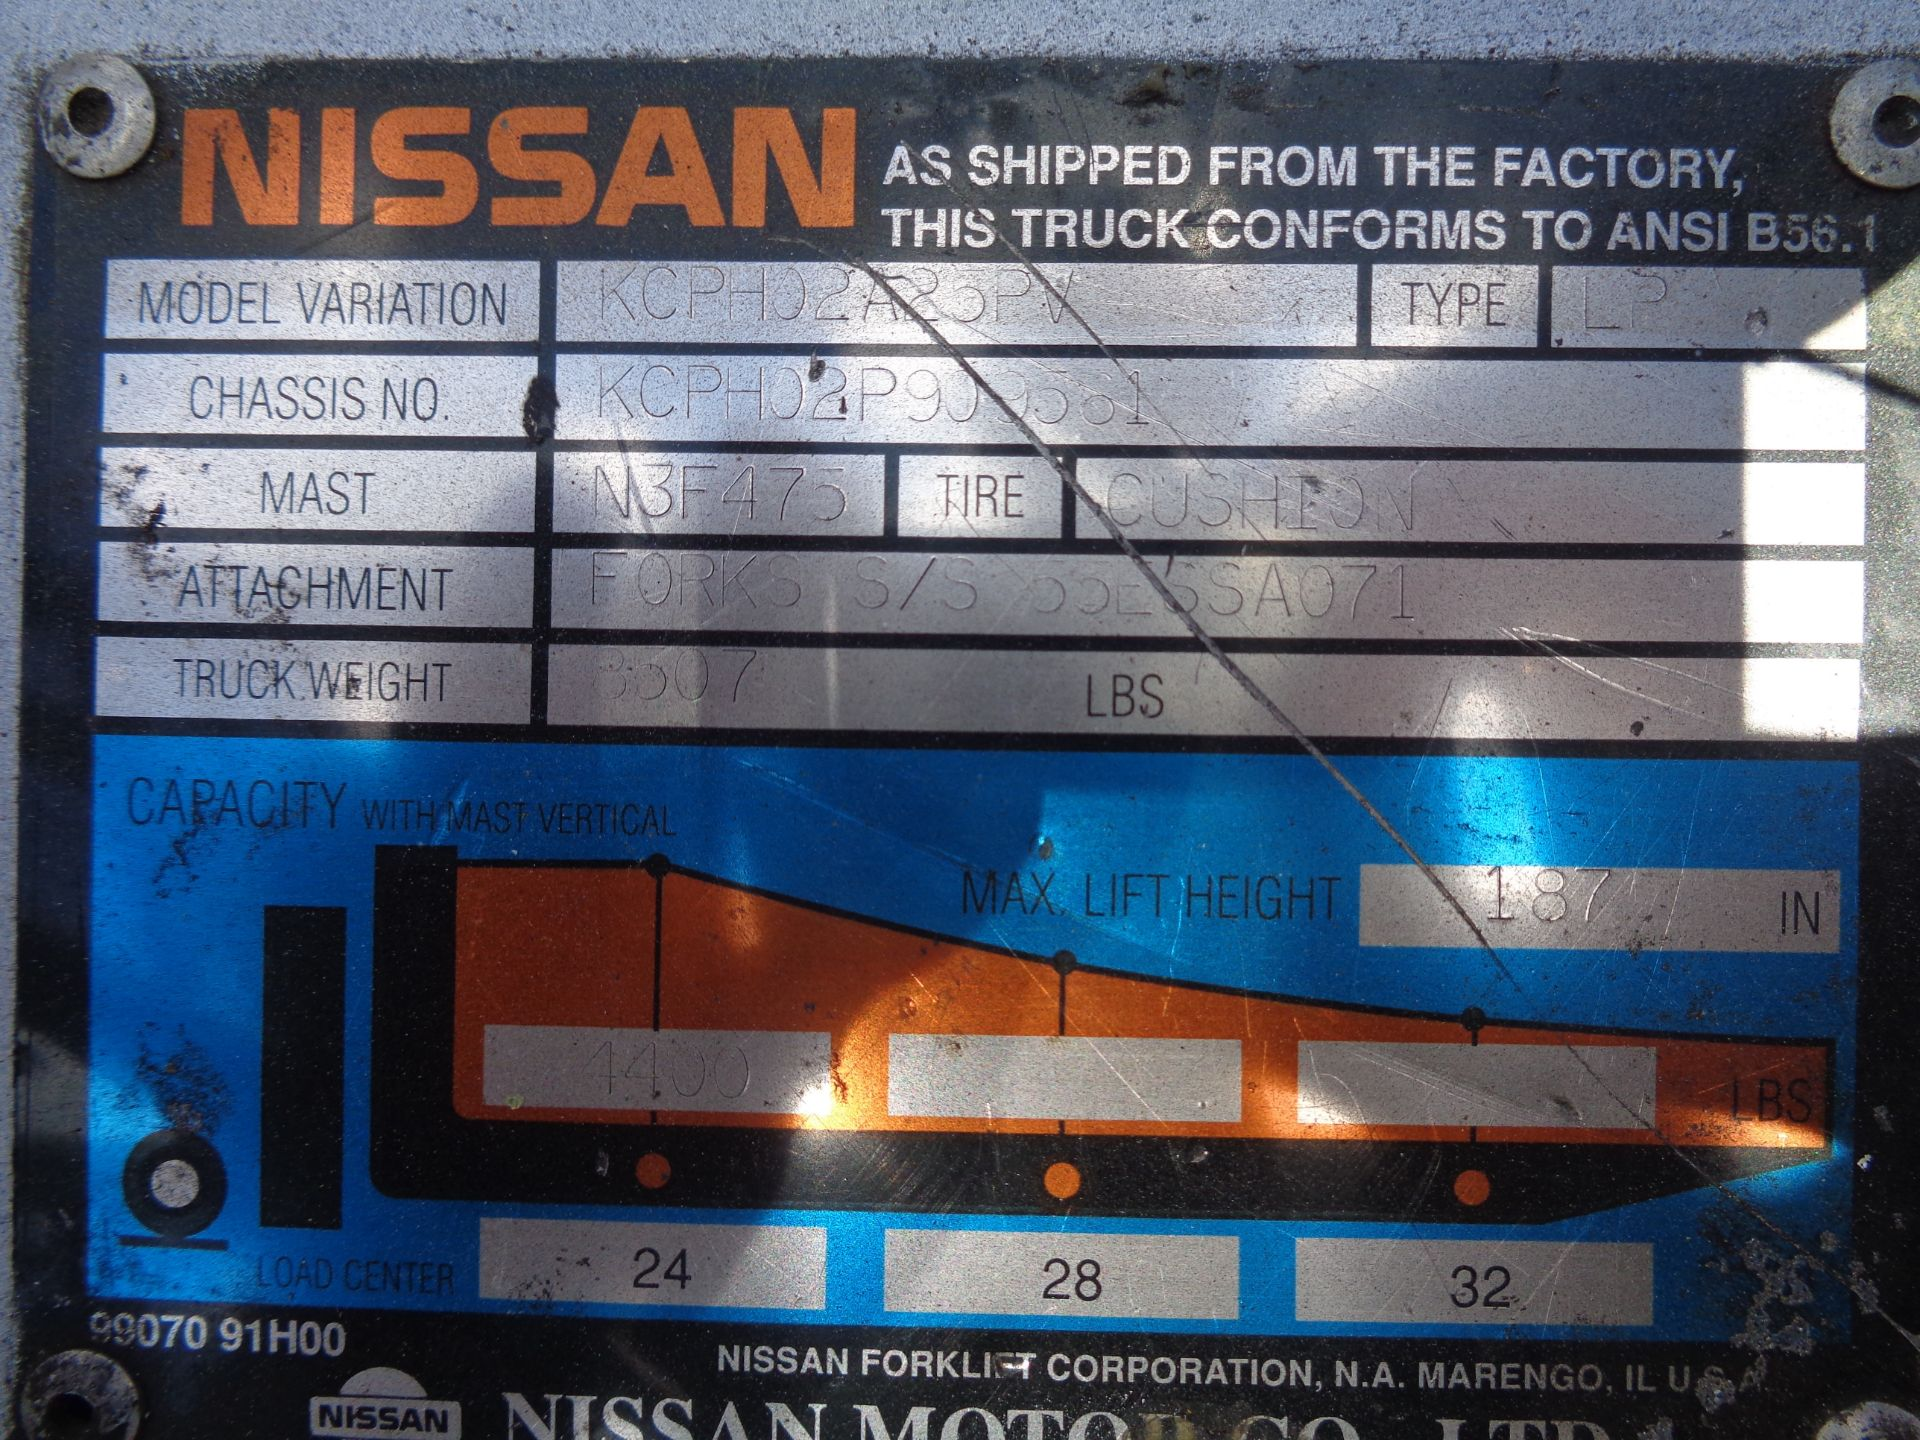 Nissan KCPH02A25PV 4,400 lb Forklift - Image 17 of 17